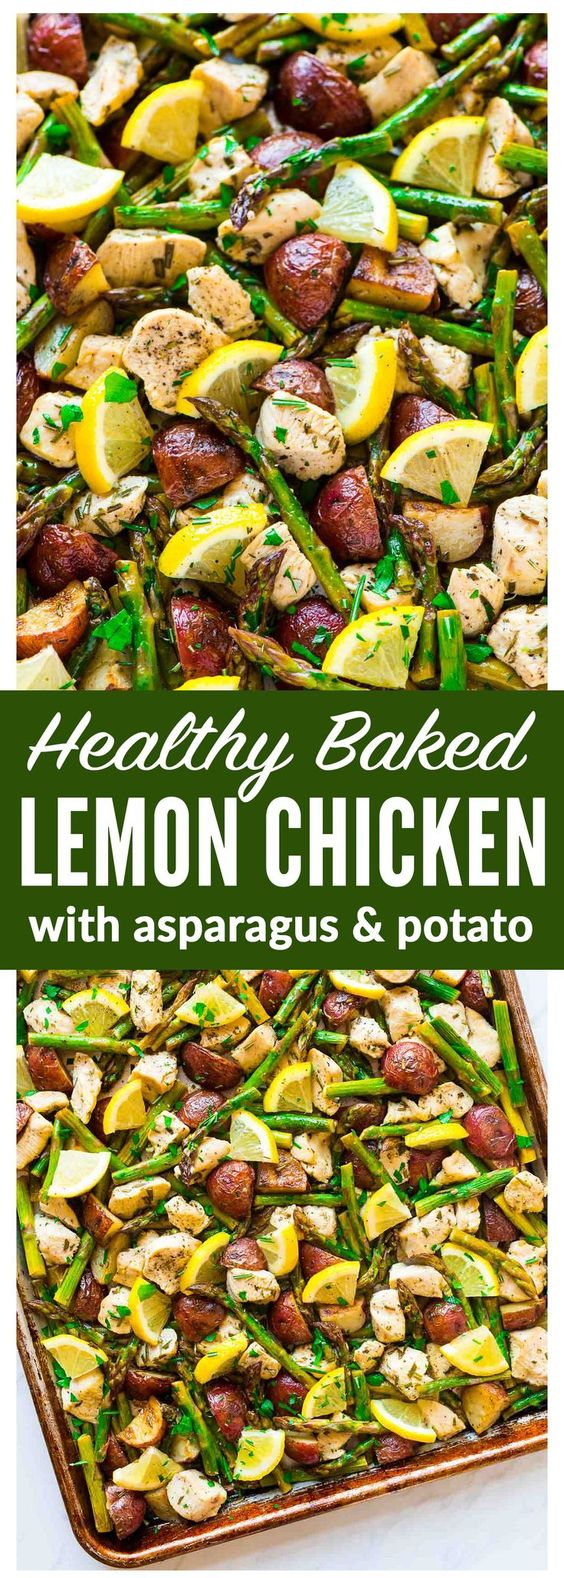 Baked Lemon Chicken with Asparagus